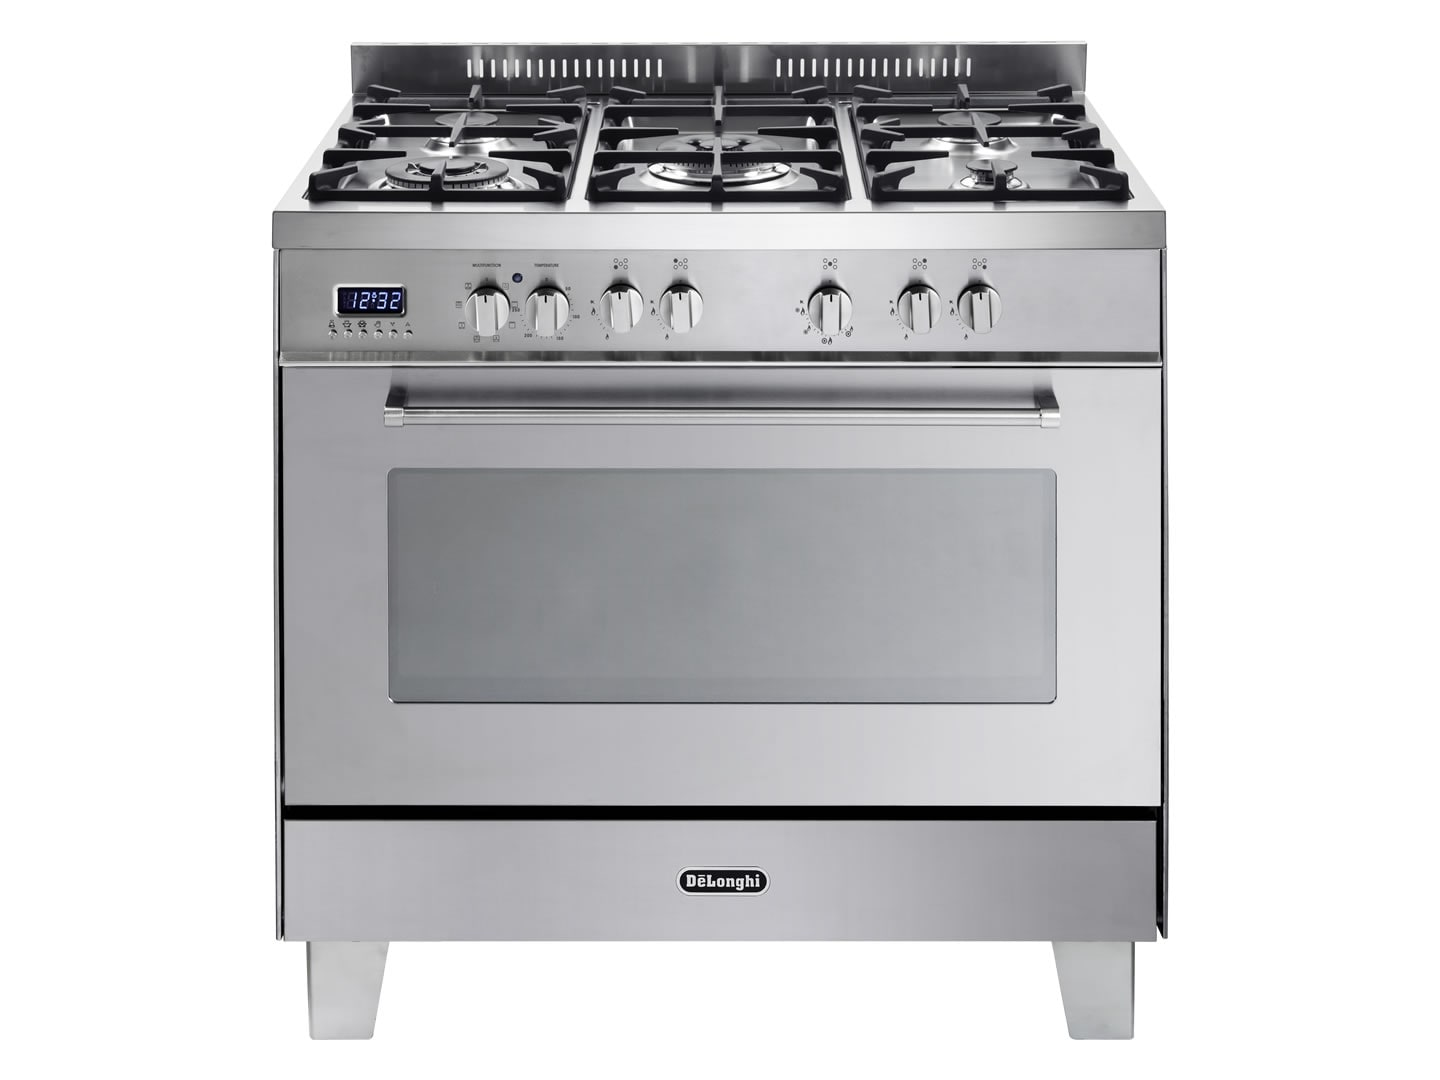 90cm Freestanding Oven With Gas Cooktop Delonghi New Zealand